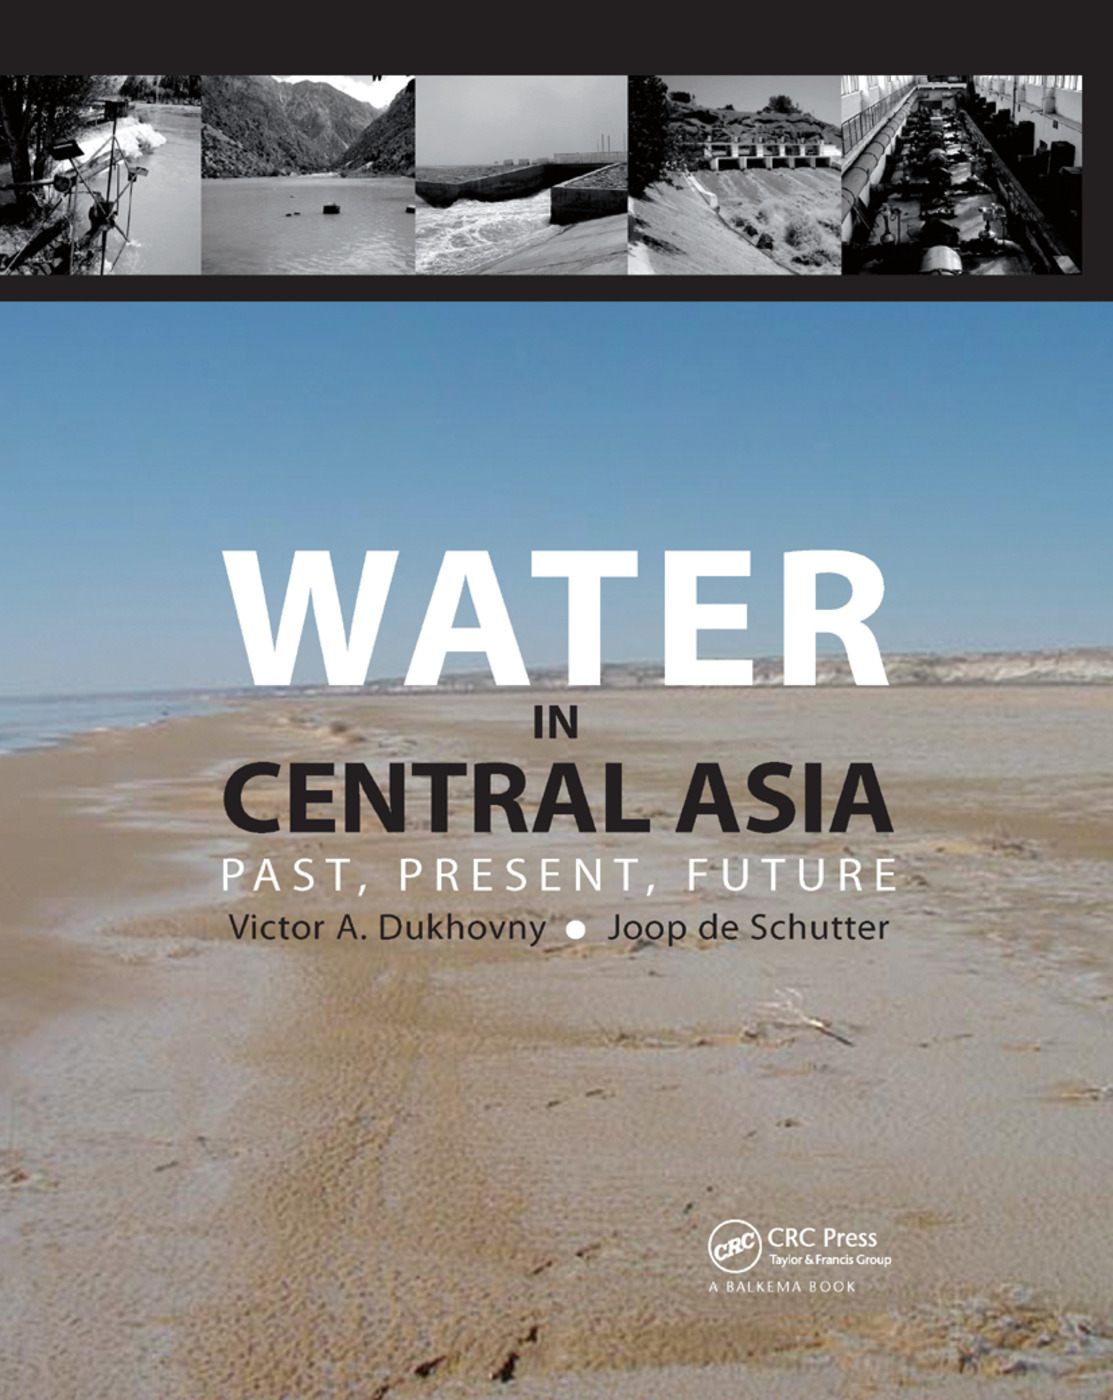 Water in Central Asia: Past, Present, Future book cover